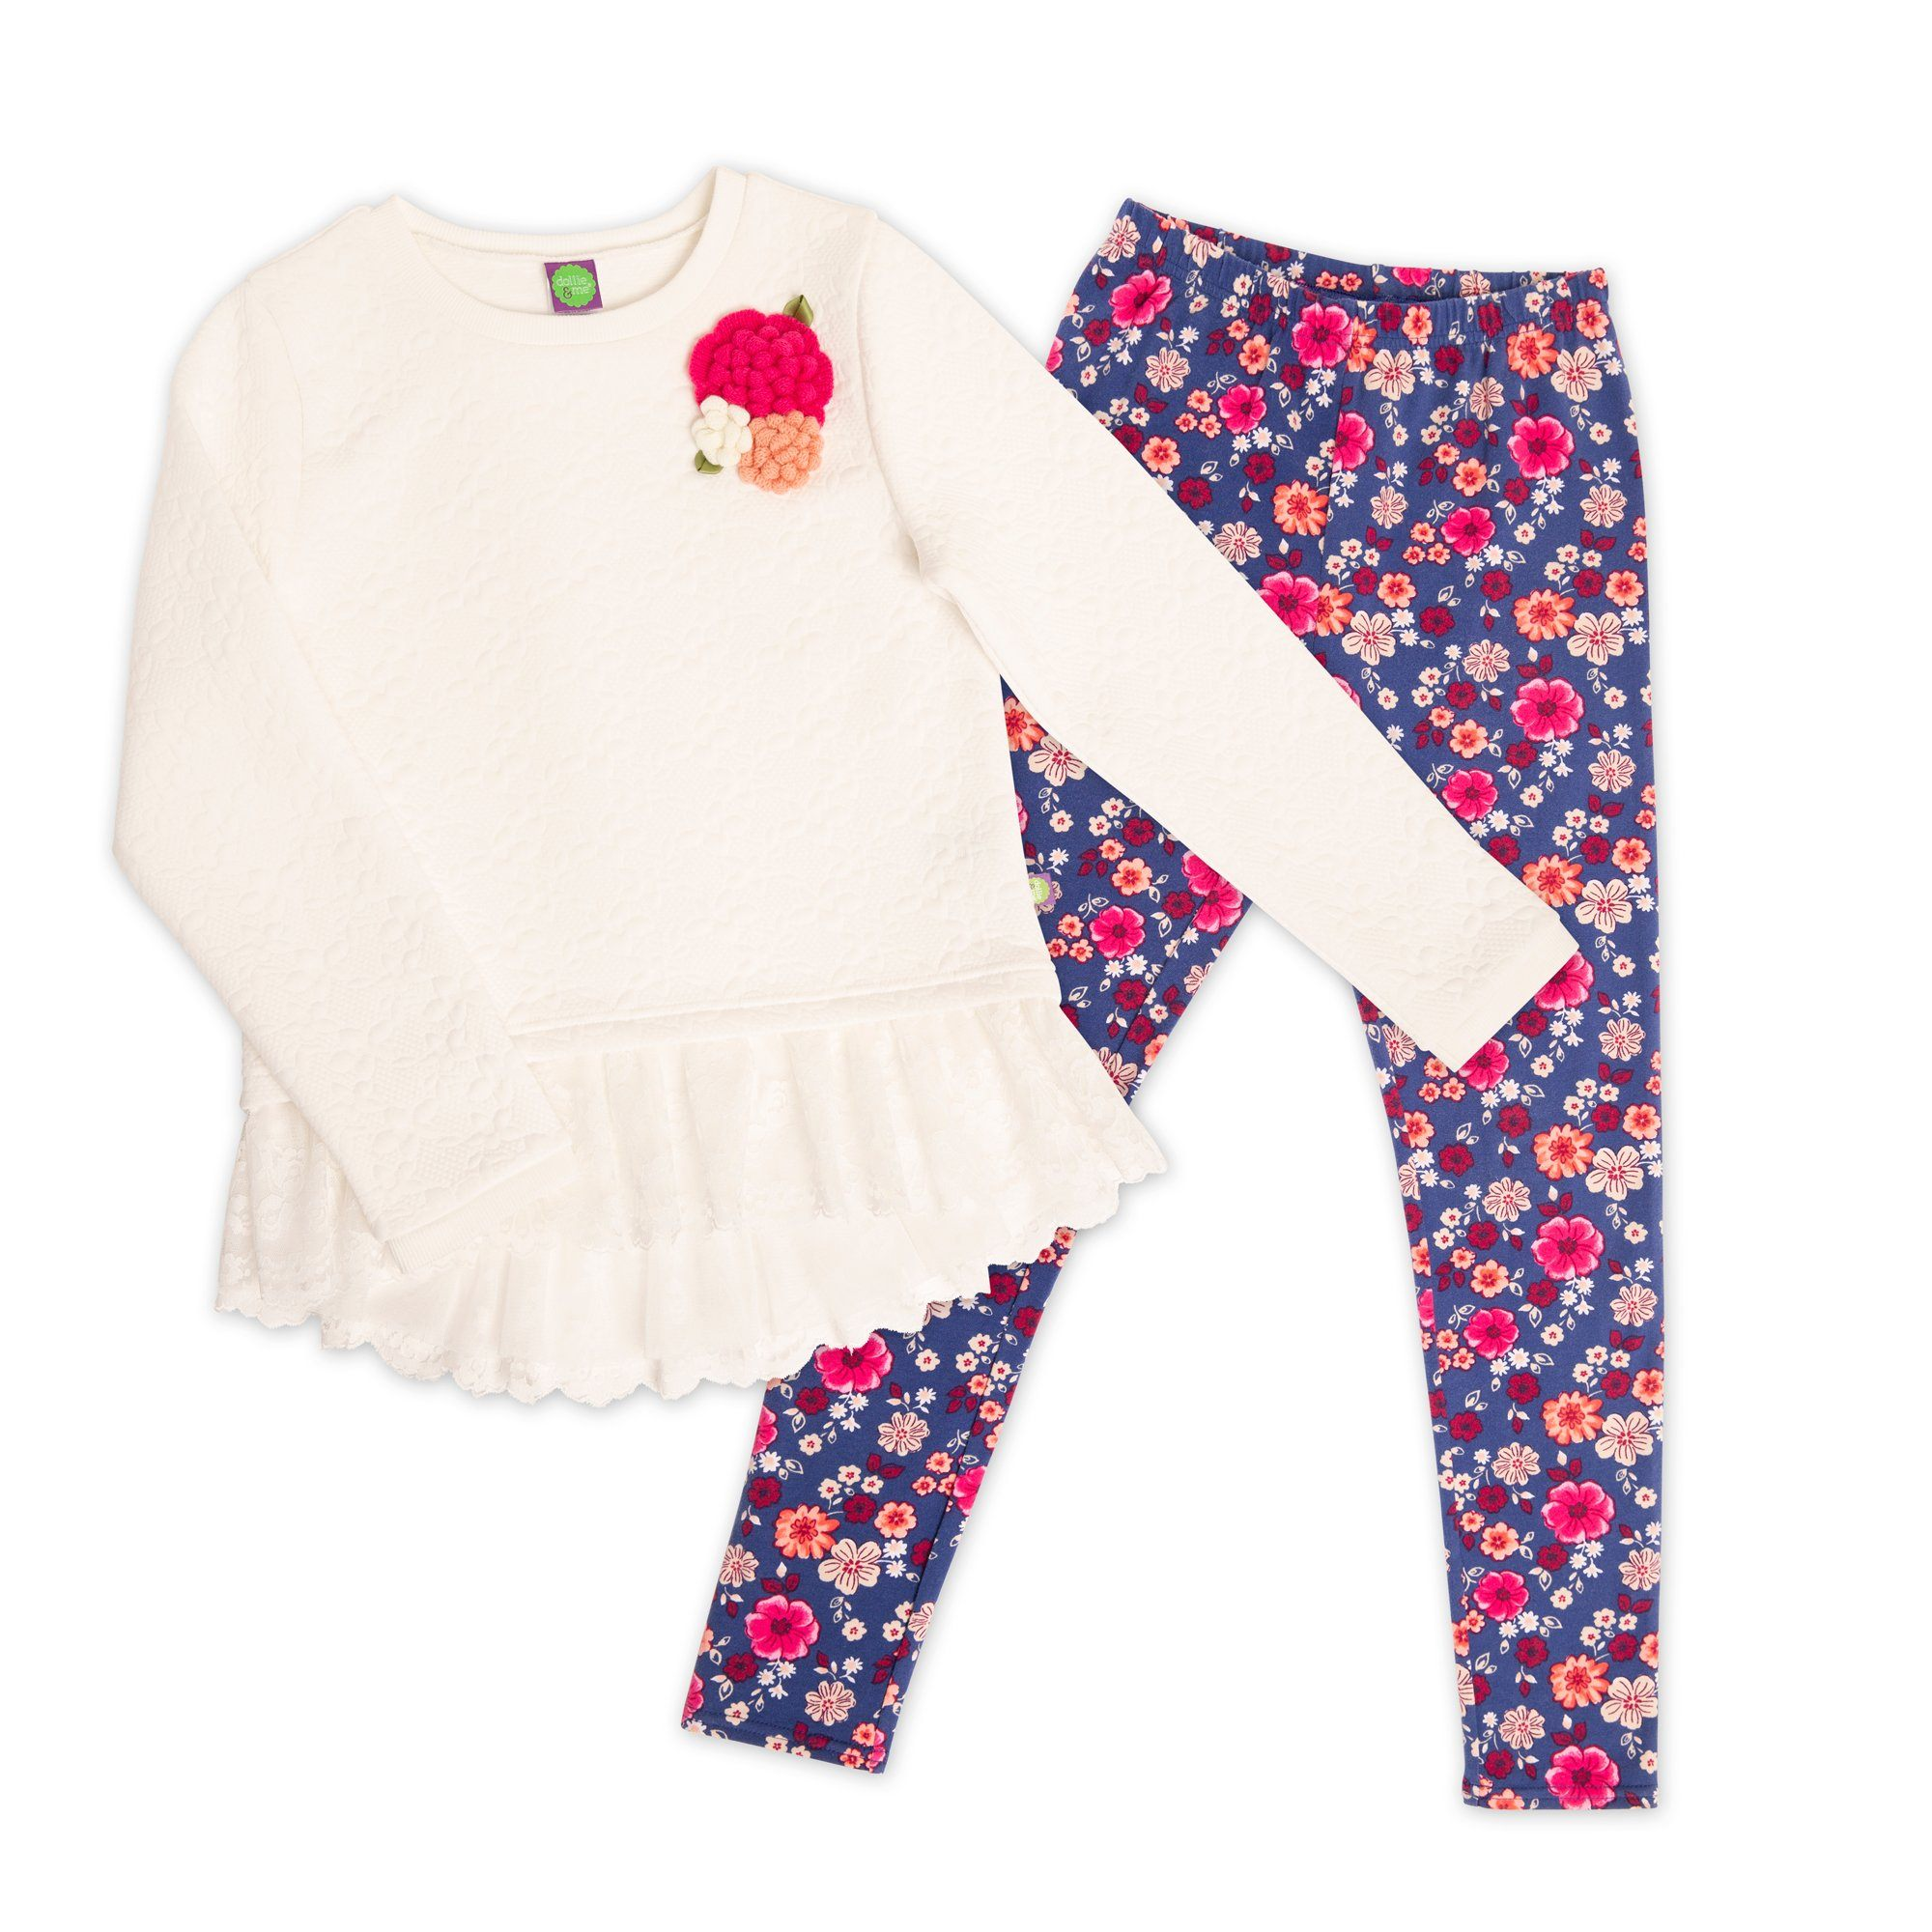 girls outfit matches 18 doll's outfit